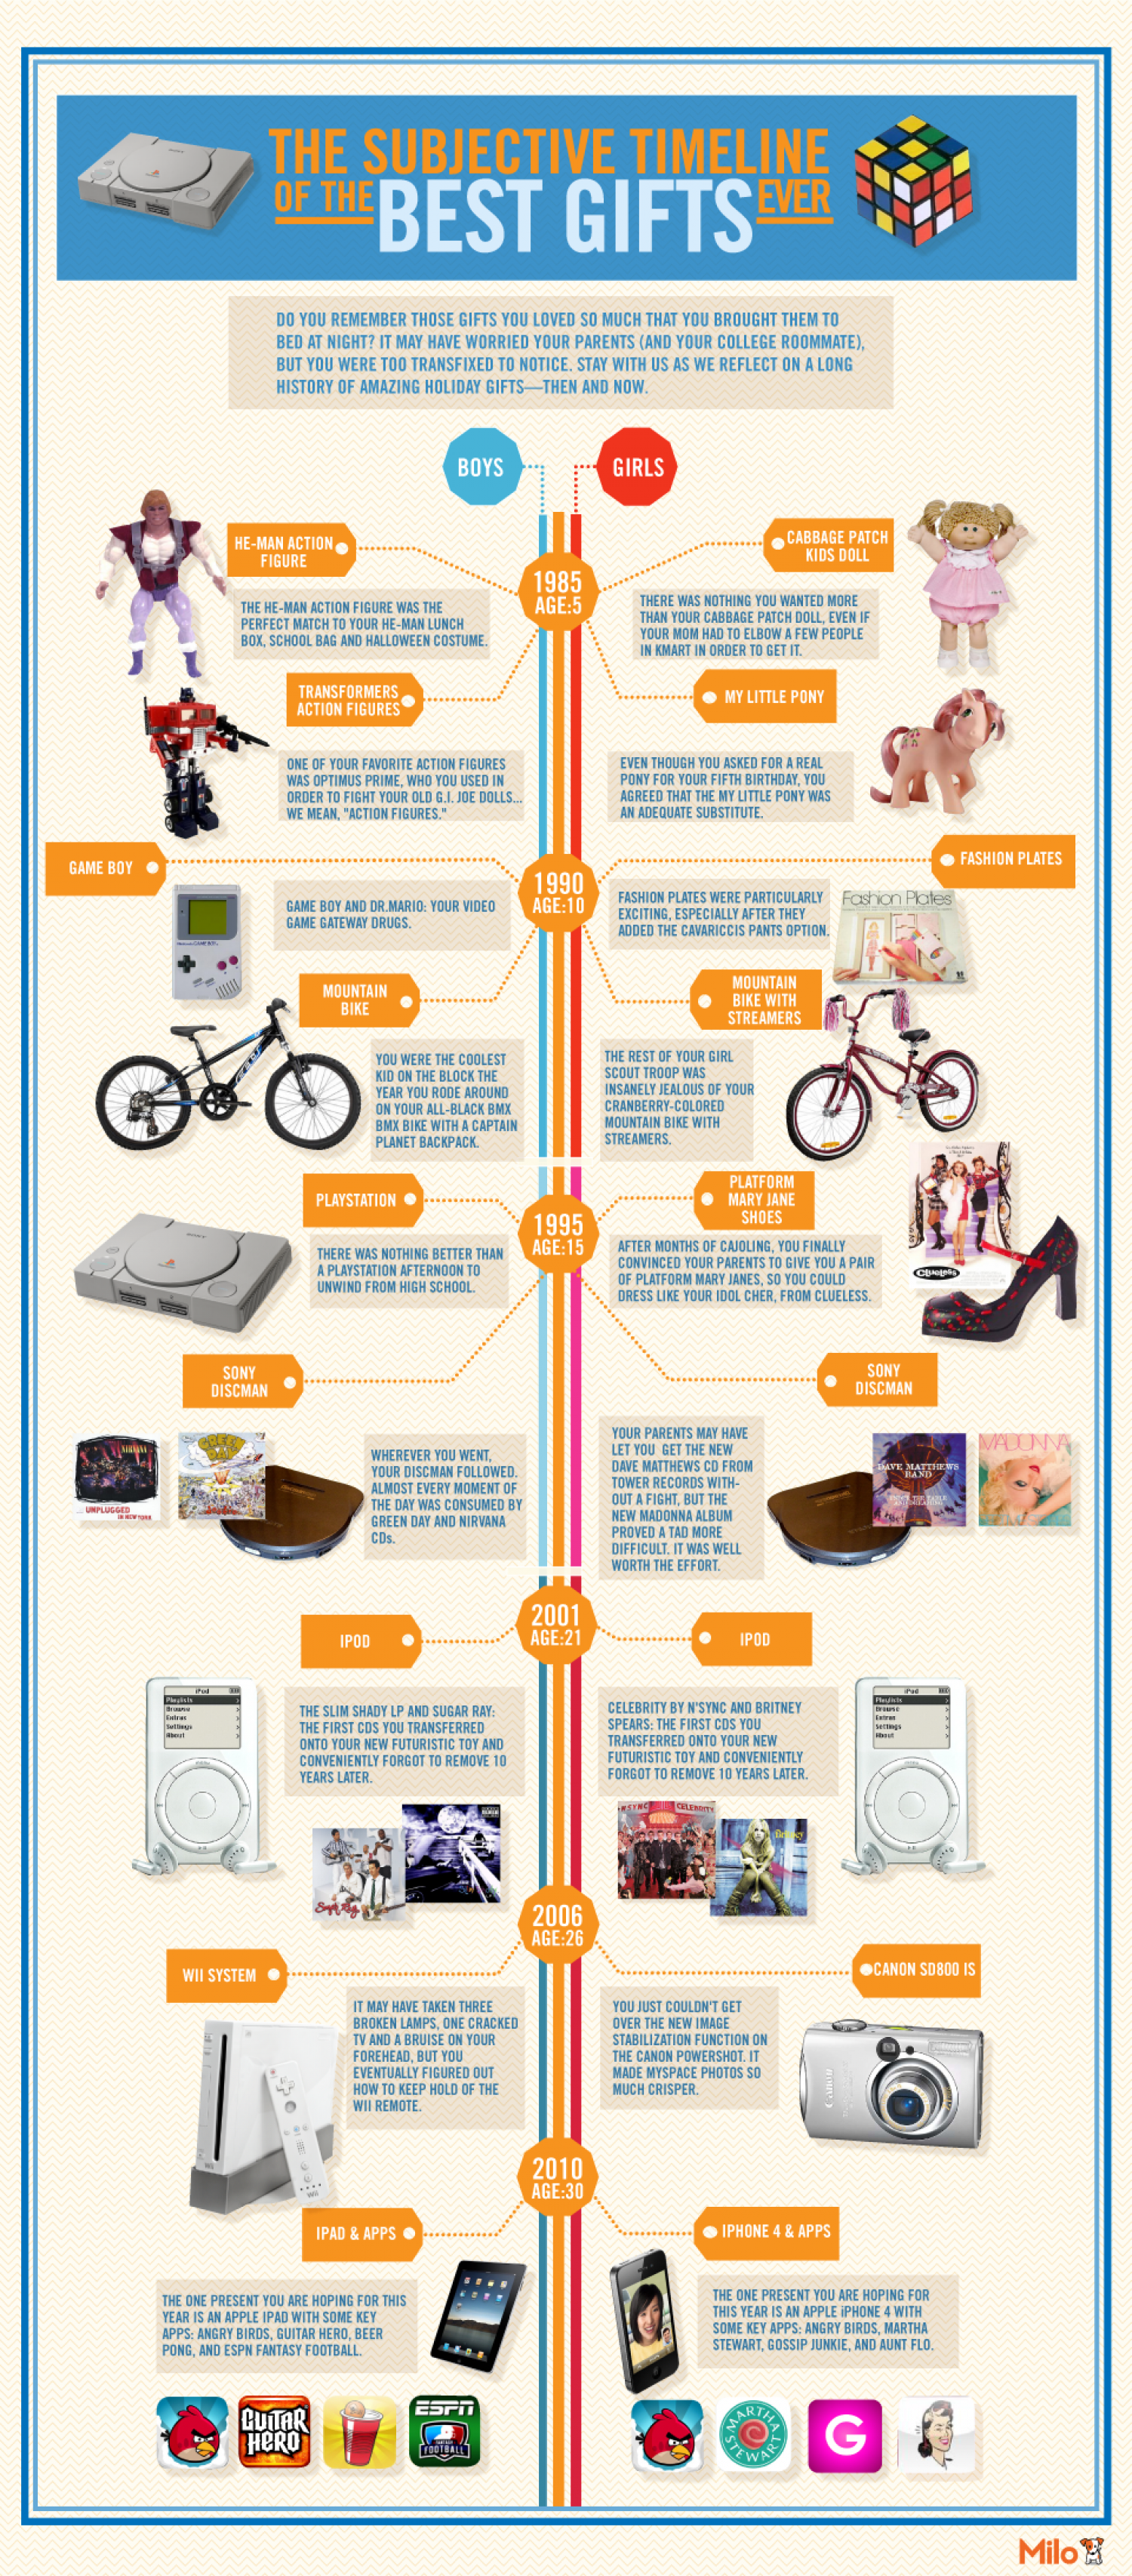 The Subjective Timeline of the 10 Best Gifts Ever Infographic